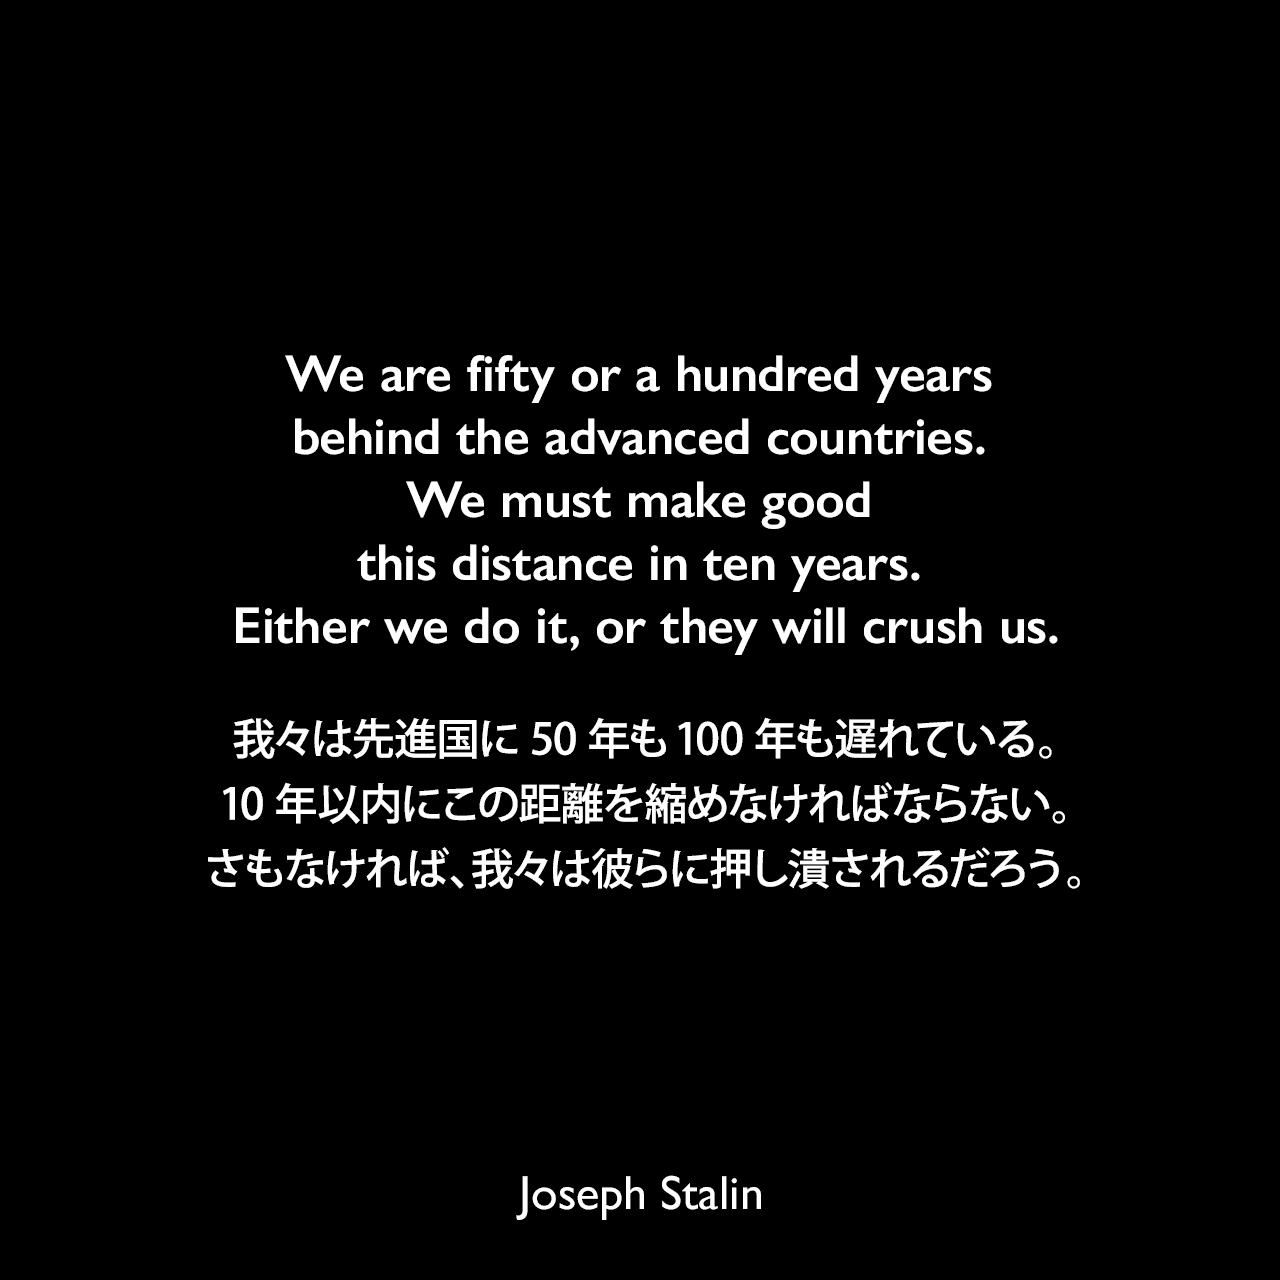 We are fifty or a hundred years behind the advanced countries. We must make good this distance in ten years. Either we do it, or they will crush us.我々は先進国に50年も100年も遅れている。10年以内にこの距離を縮めなければならない。さもなければ、我々は彼らに押し潰されるだろう。- 1931年2月4日のスターリンのスピーチ「The Tasks of Economic Executives」よりJoseph Stalin